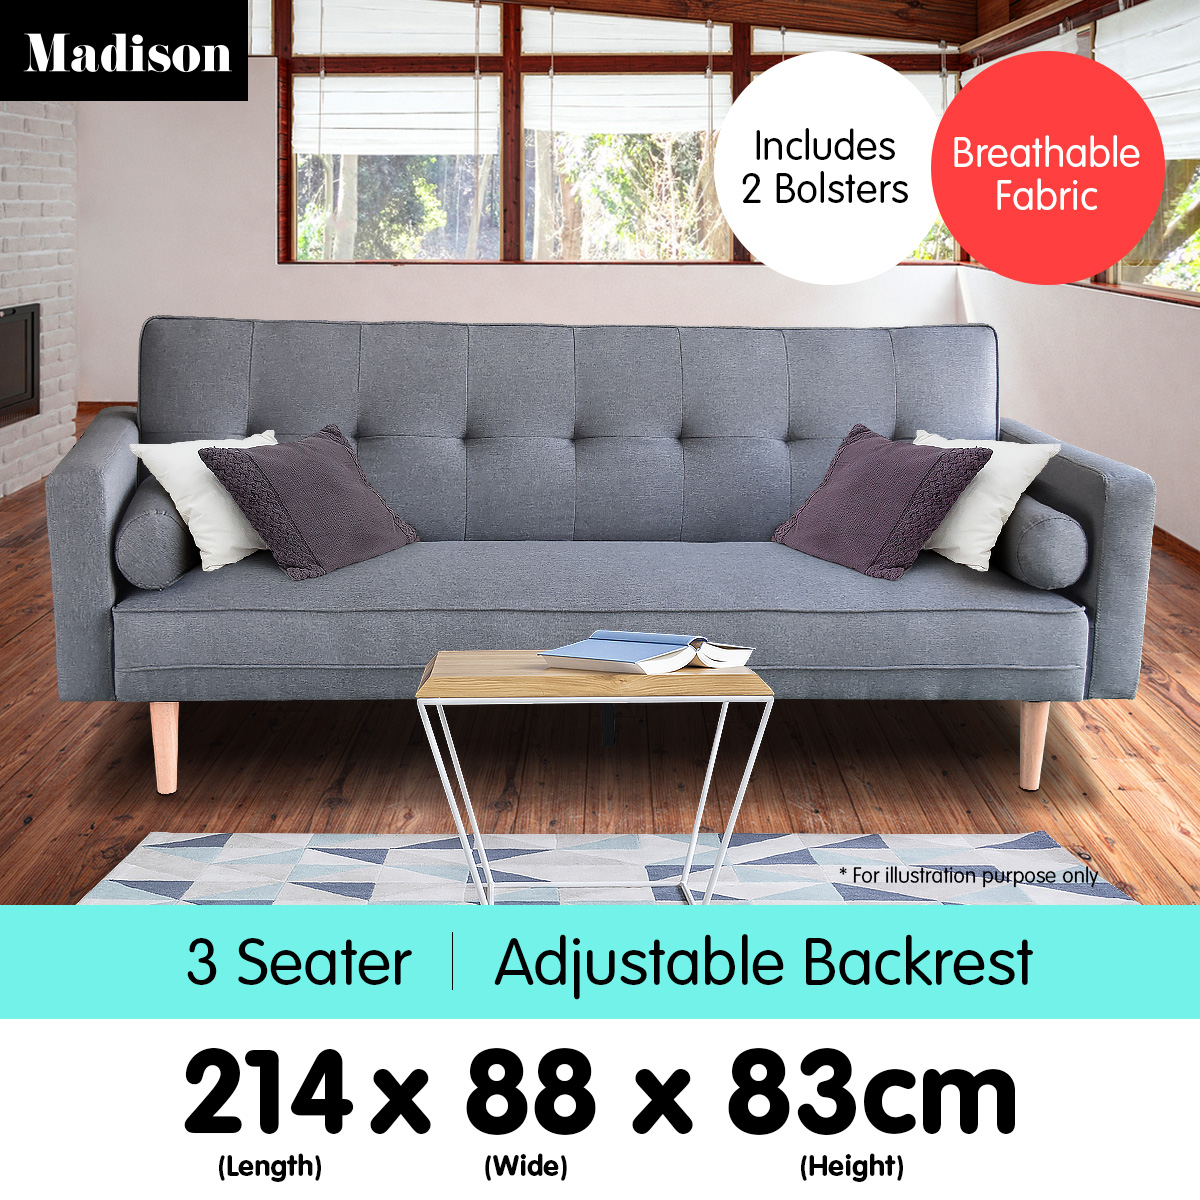 Madison 3 Seater Linen Sofa Bed Couch With Pillows Dark